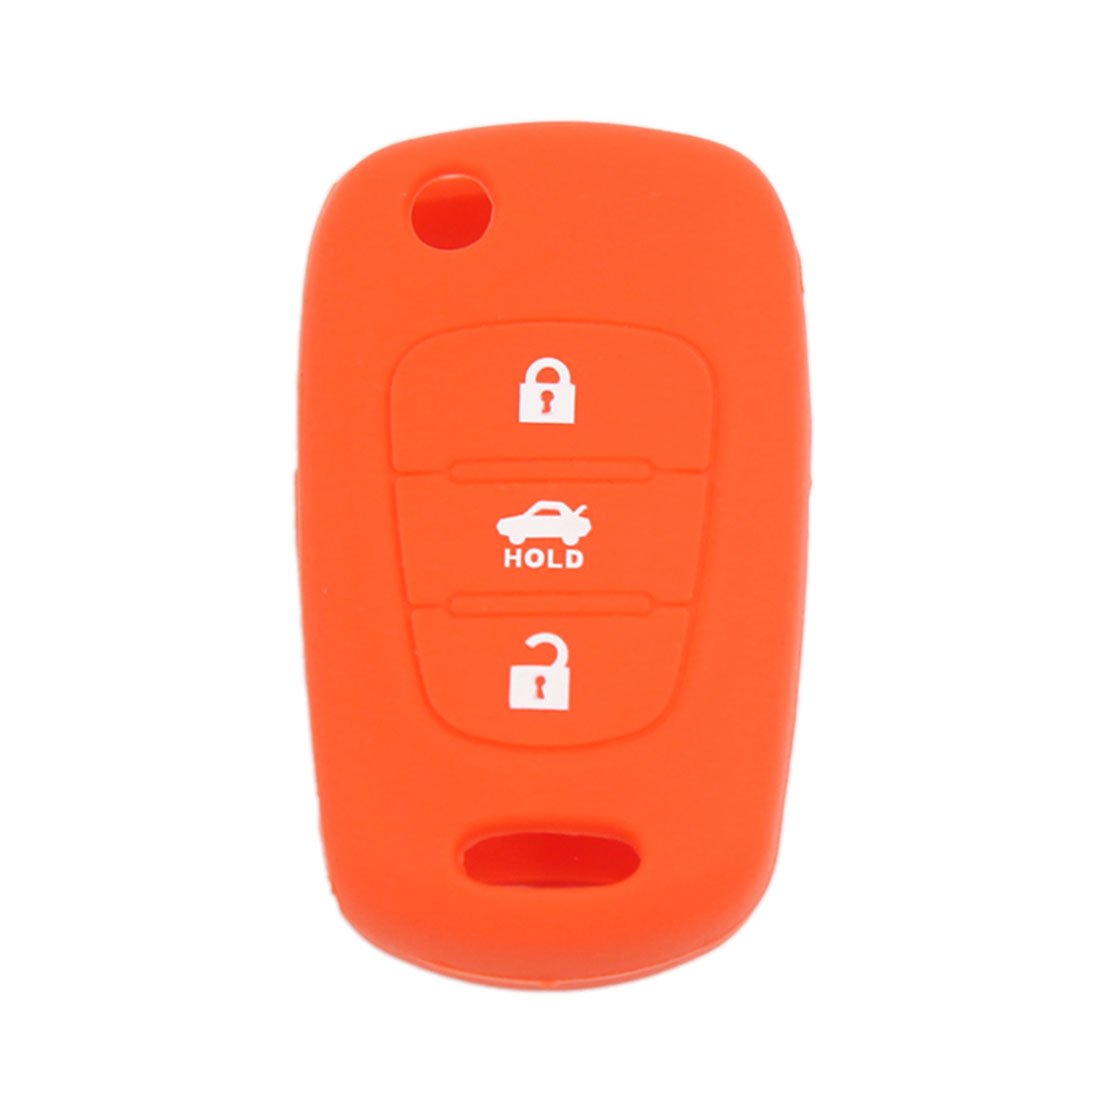 Orange Silicone Cover Holder Remote Key Case Fob 3 Buttons for Hyundai Kia K2 K5